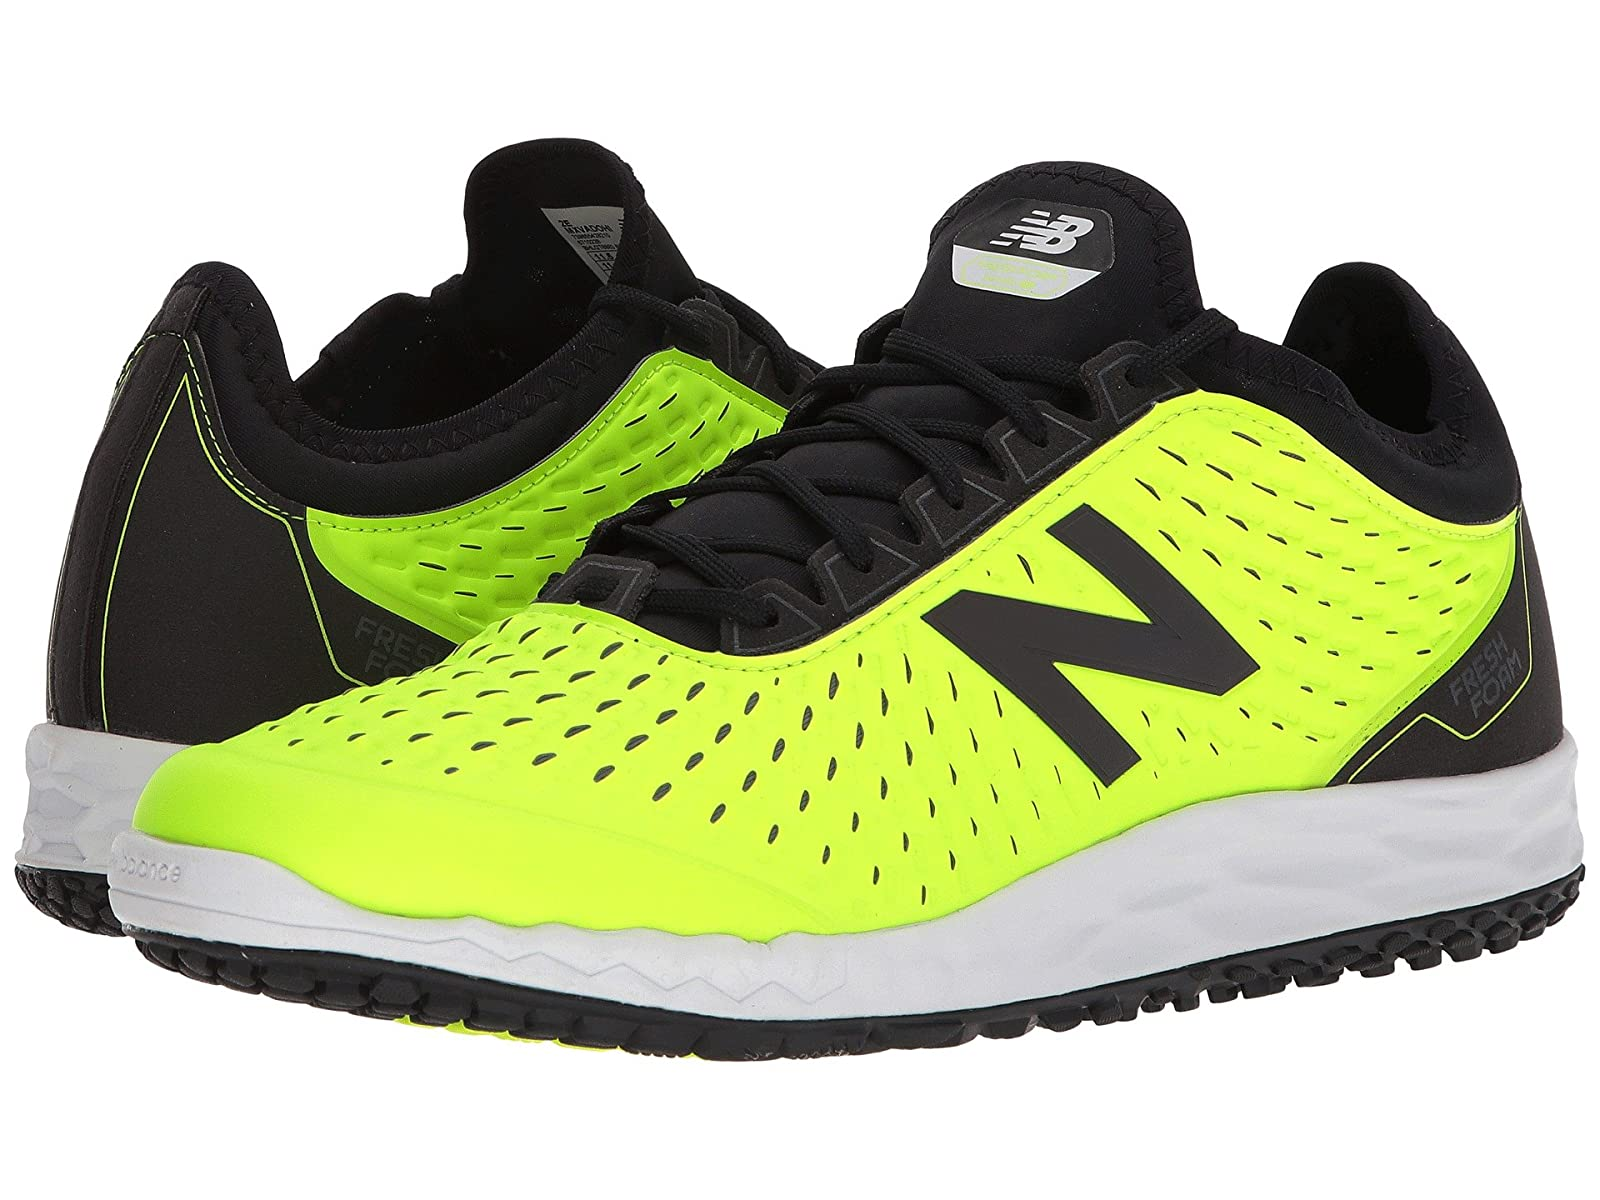 New Balance MXVADOv1Cheap and distinctive eye-catching shoes